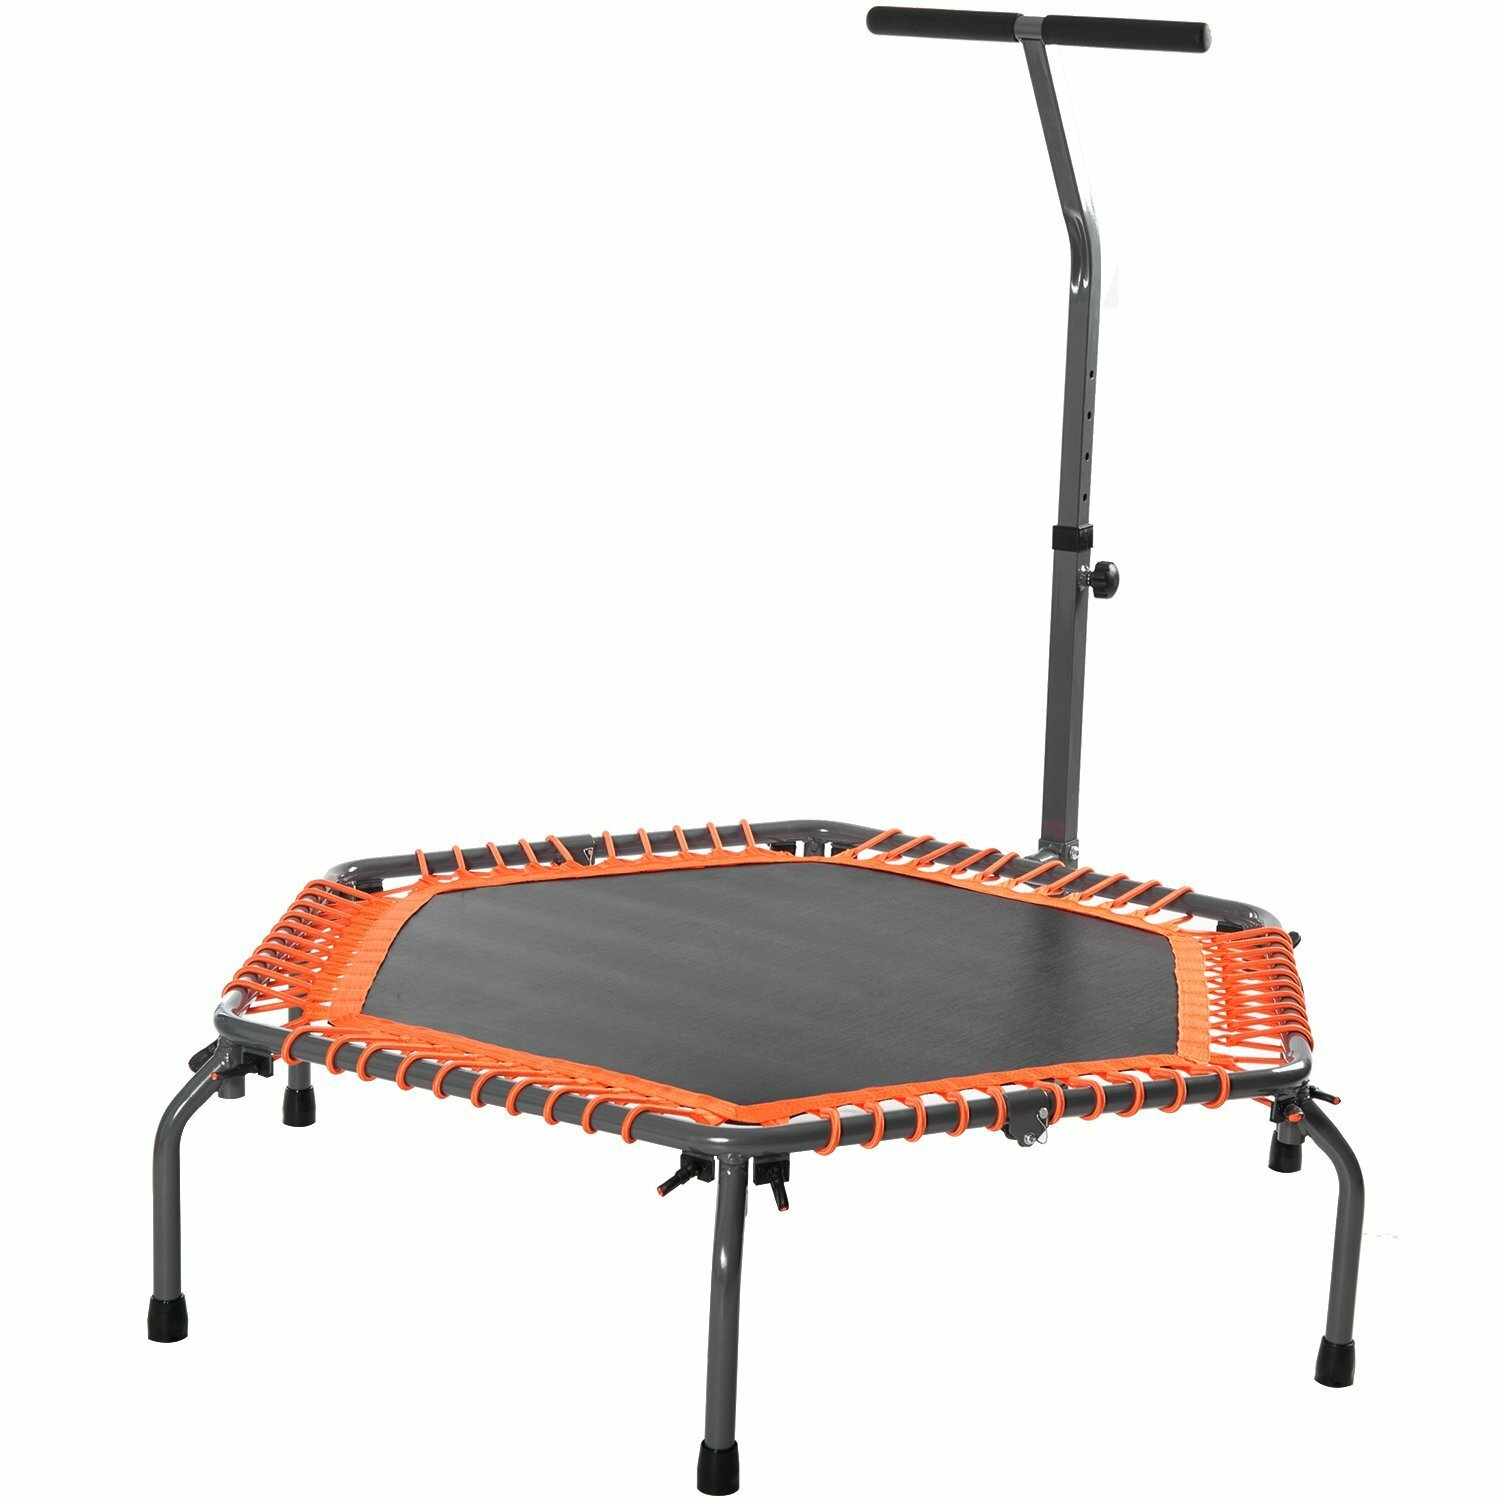 Merax 4.5' Exercise Fitness Trampoline With Safety